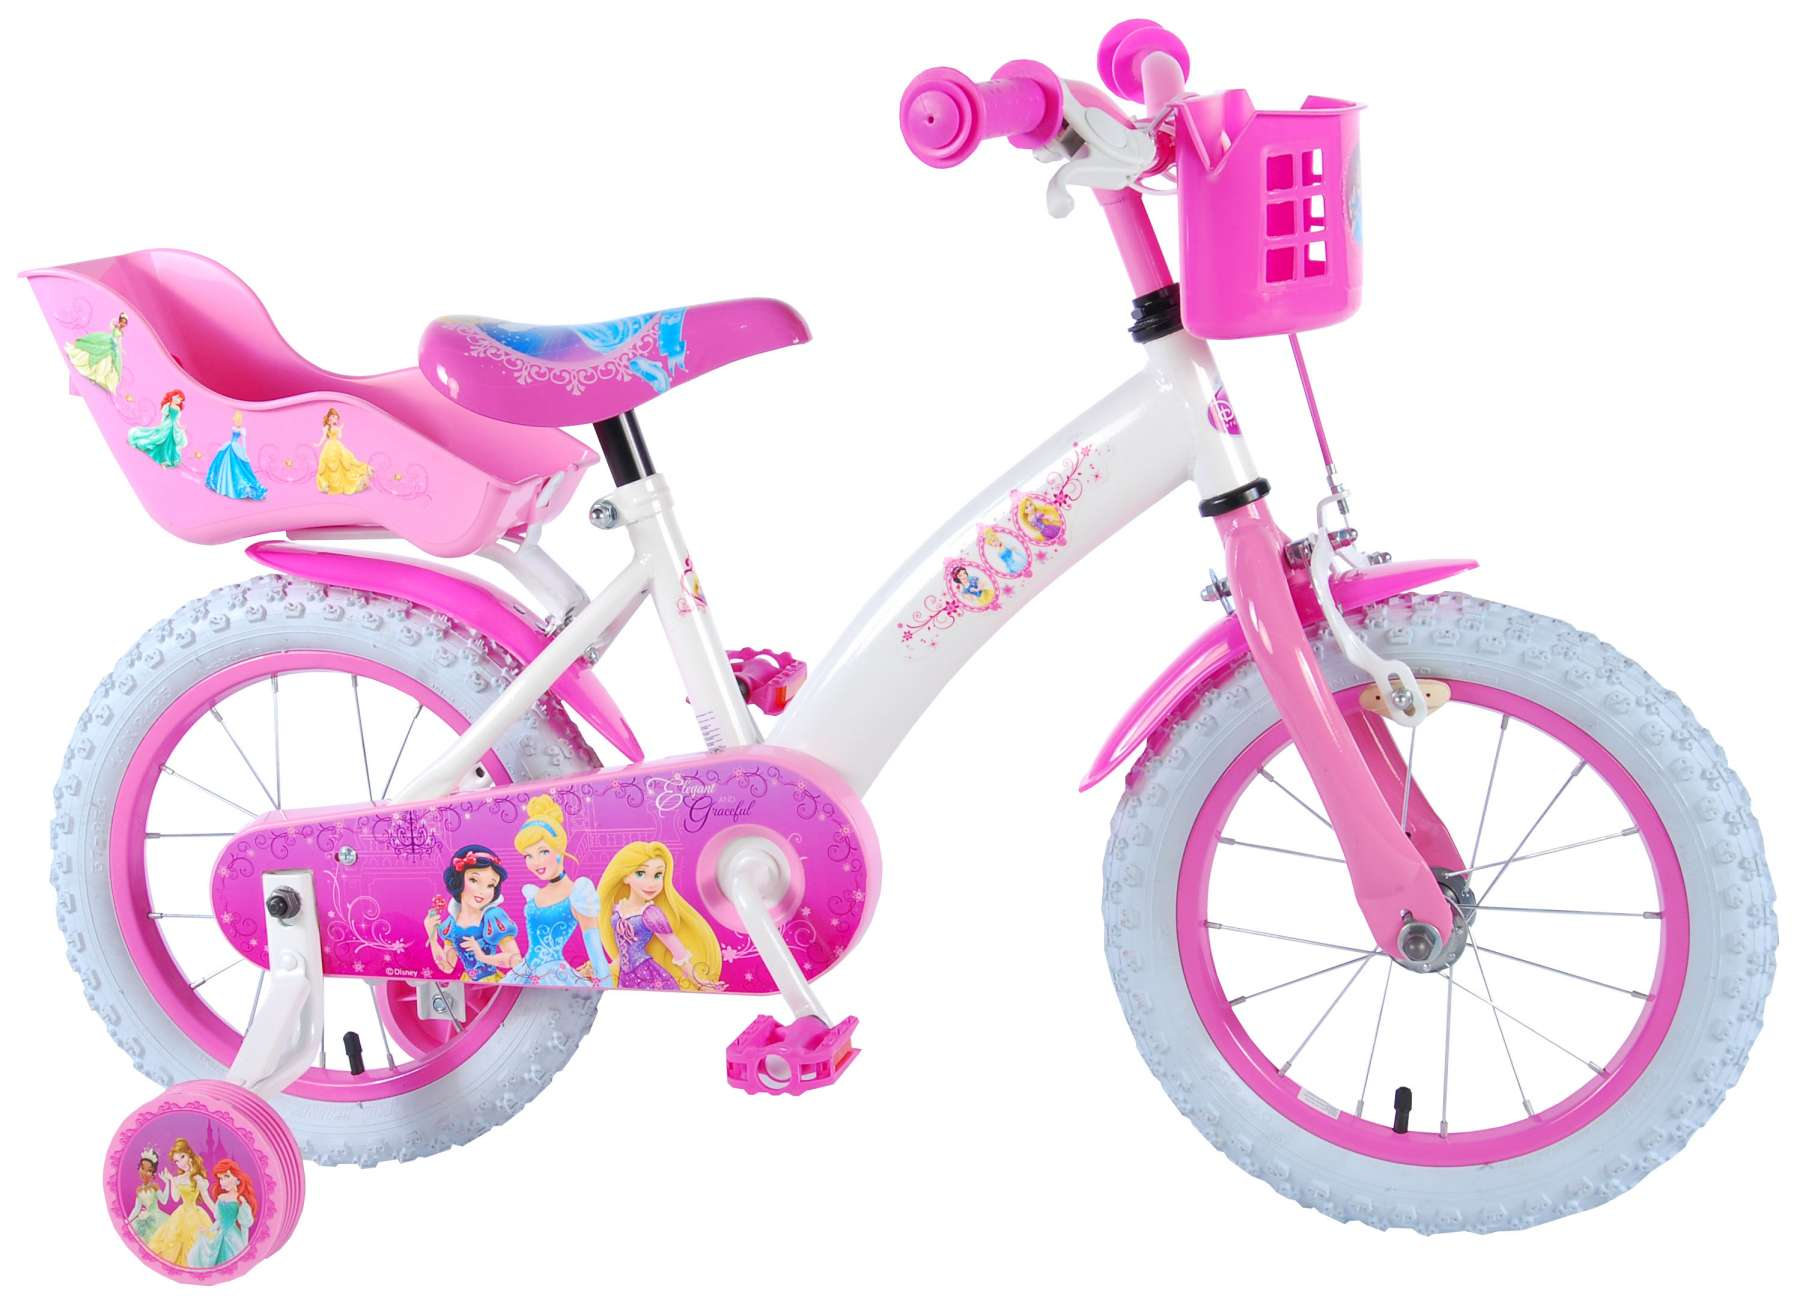 83fd58038dd Disney Princess 14 inch girls bicycle